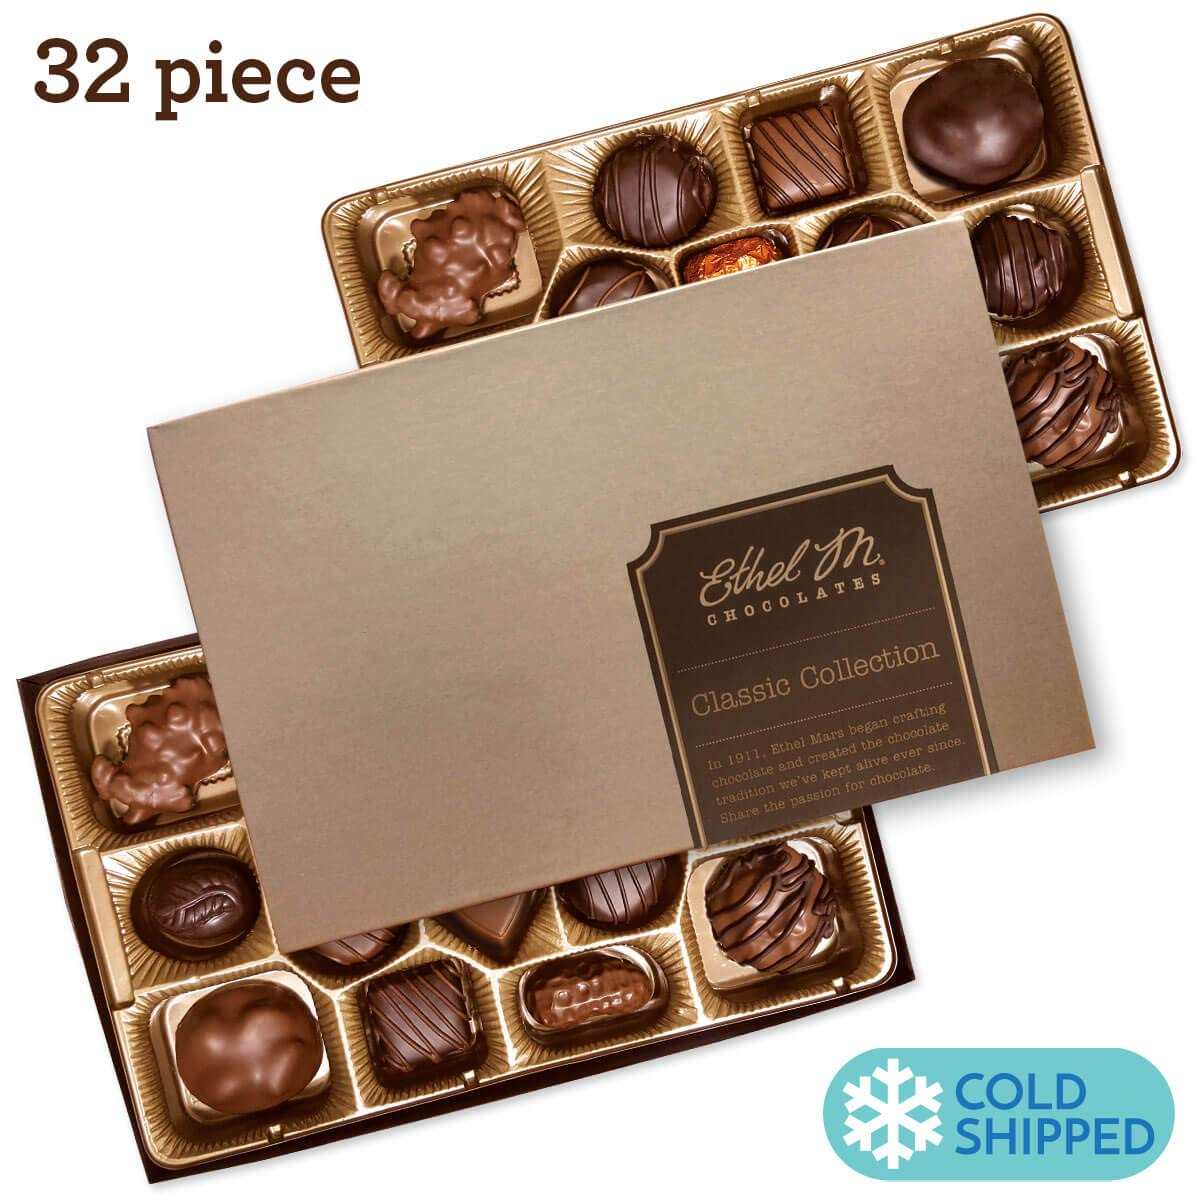 Ethel M Chocolates Classic Collection 32 piece by Ethel M. Chocolates